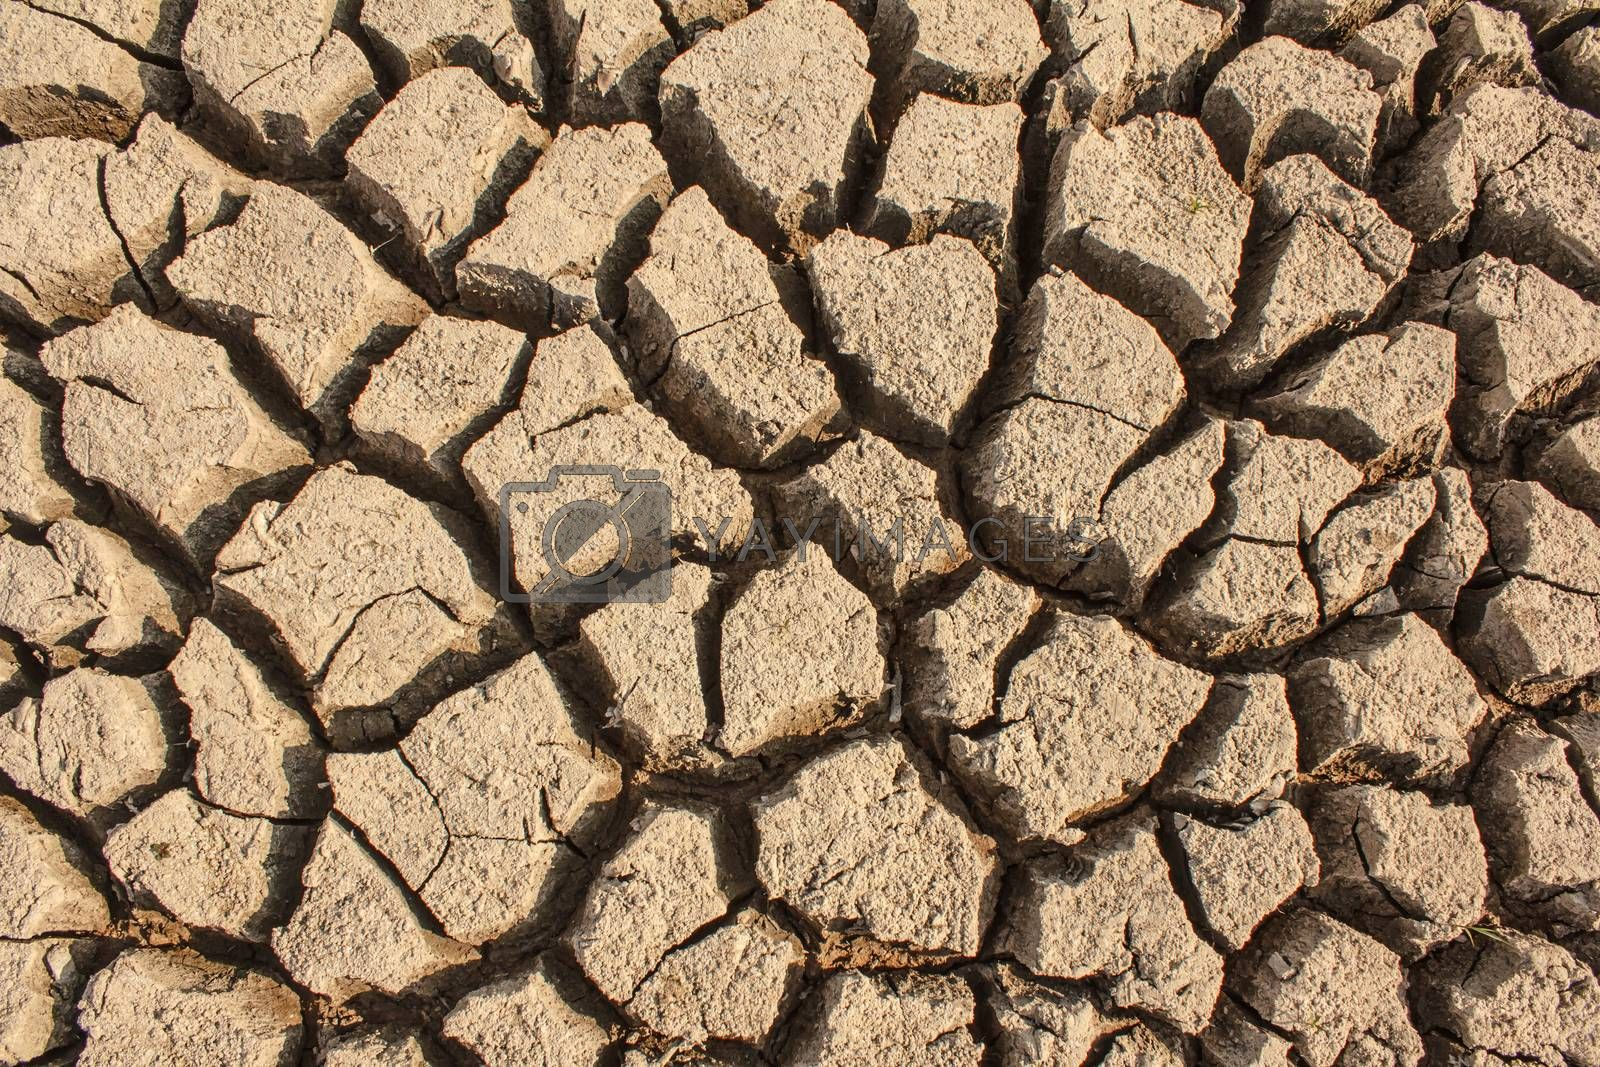 Royalty free image of Dry by letoakin